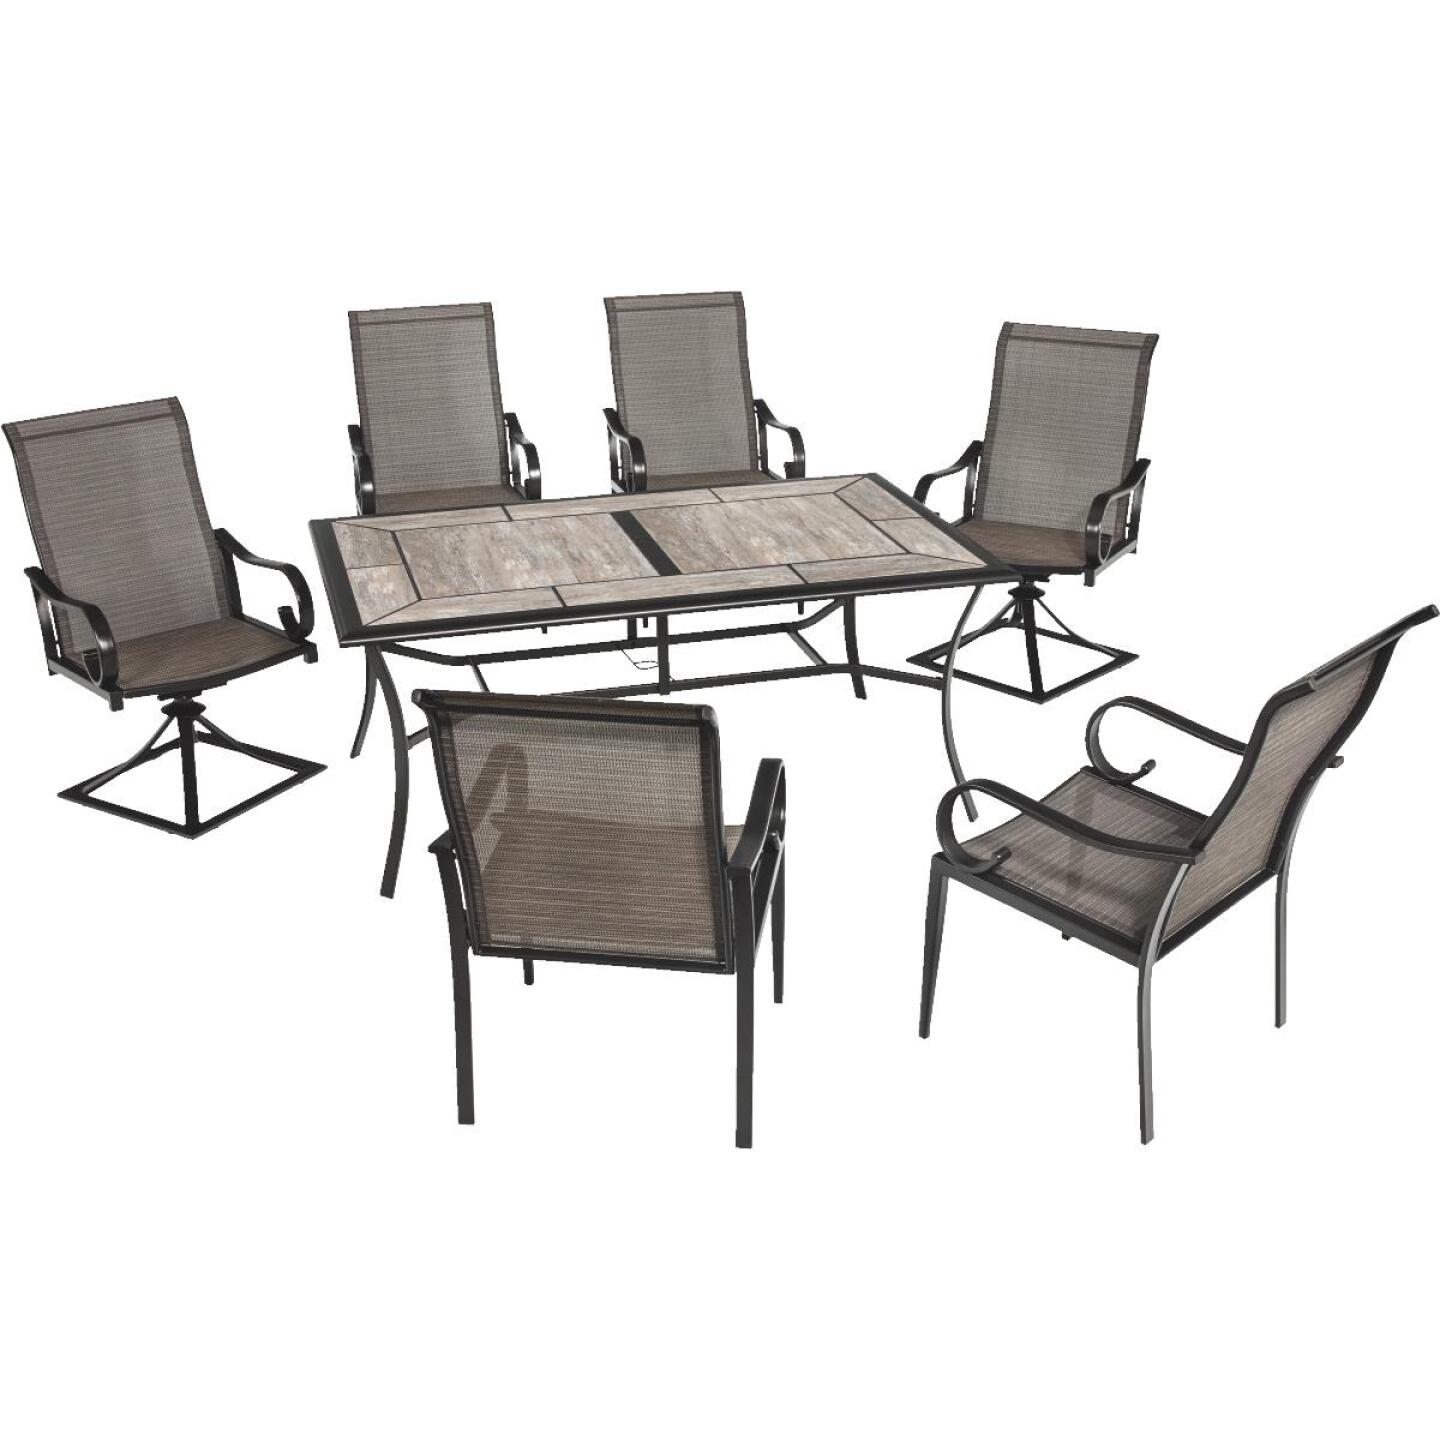 Outdoor Expressions Berkshire 7-Piece Dining Set Image 135